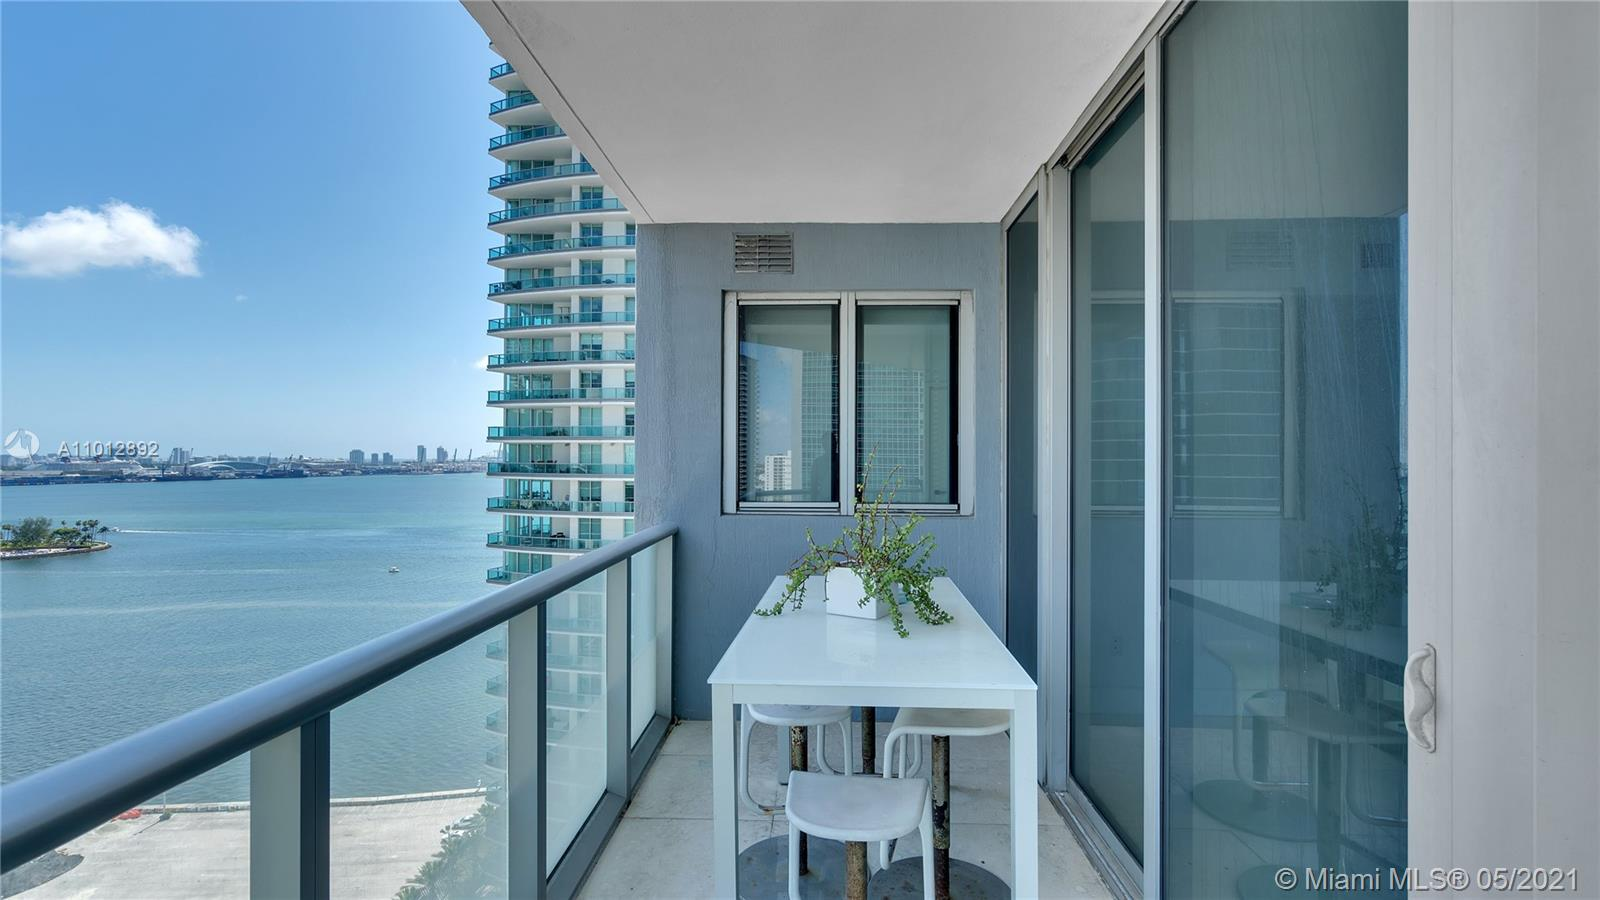 Brickell House is a 46 story condo building in the heart of Brickell Miami. This building offers striking views of Biscayne Bay and Miami's skyline. Completed in 2014 and designed by award winning Sieger Suarez Architectural Firm the building has floor to ceiling glass windows with amenities that include two pools (one rooftop for residents only), fitness center, wellness spa, theater room and more!